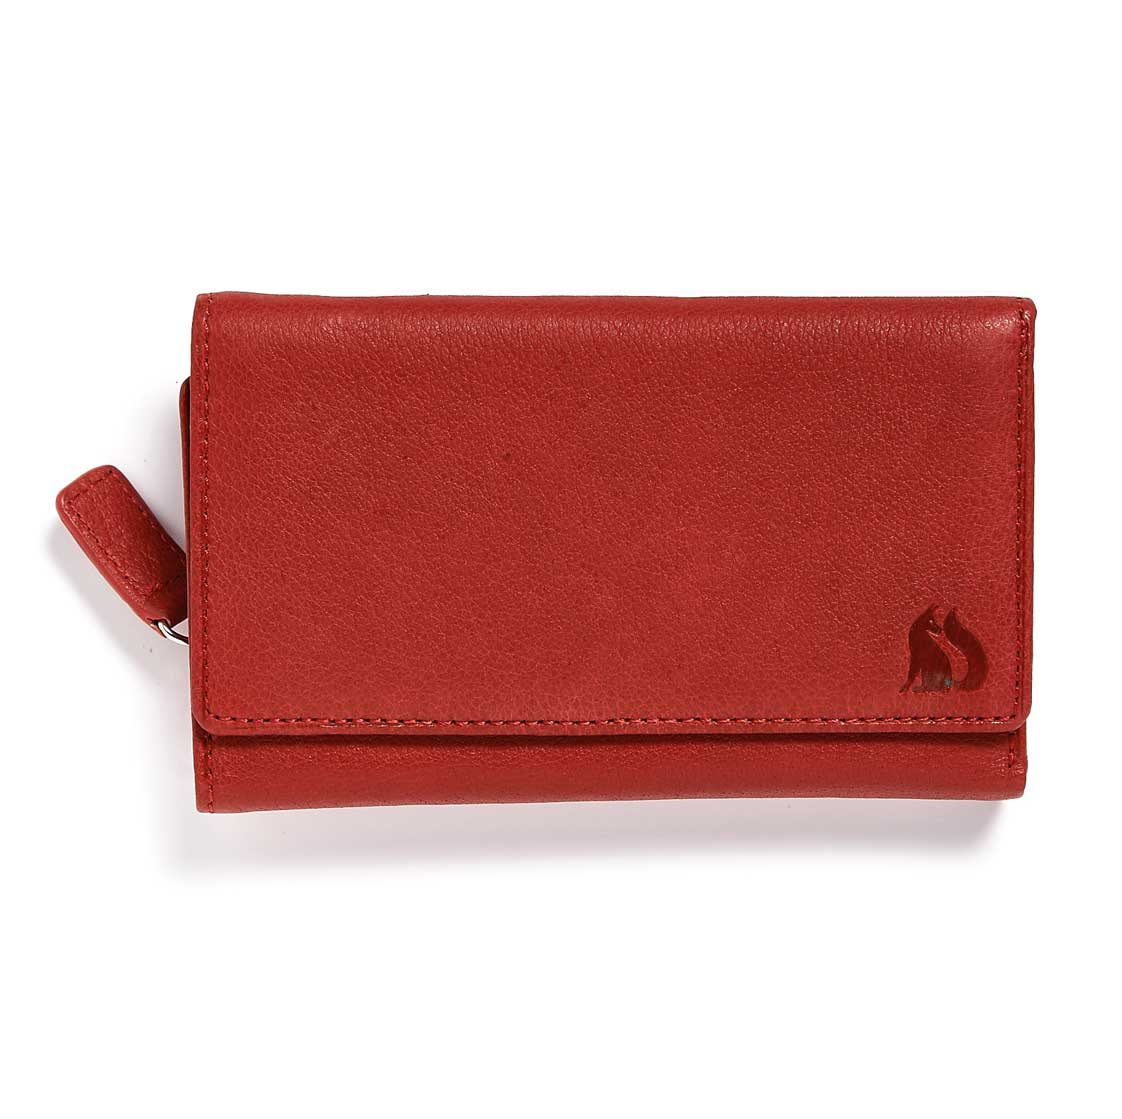 Foxfield Thirlmere Red Leather Purse